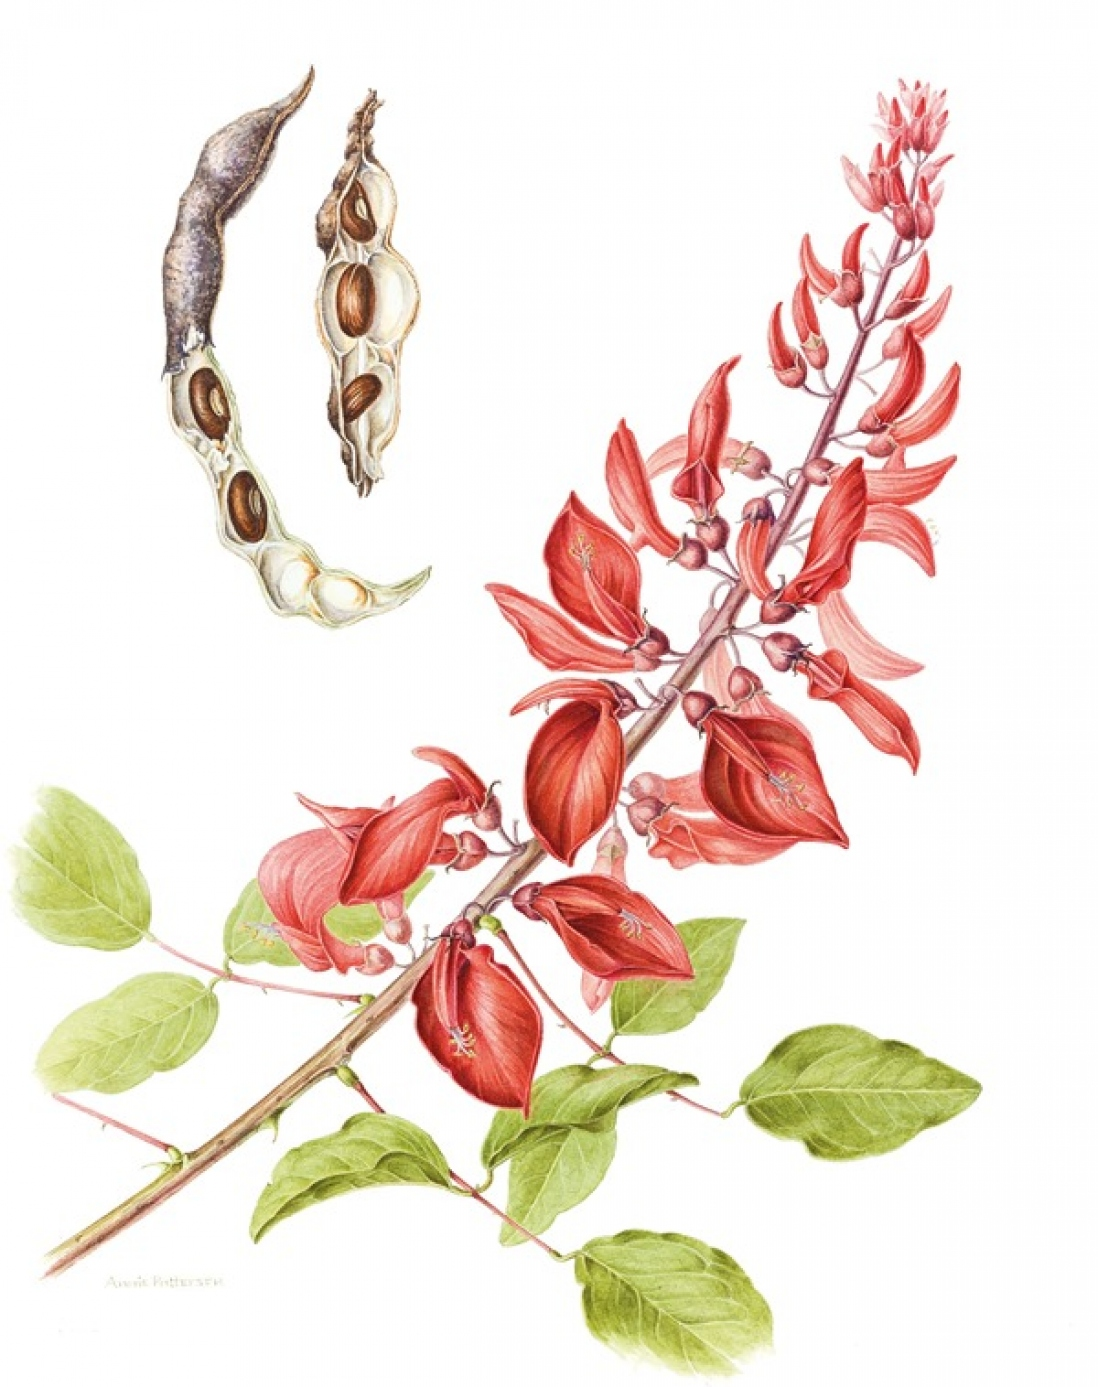 Botanical illustration of Erythrina crista-galli 'Hendersonii'